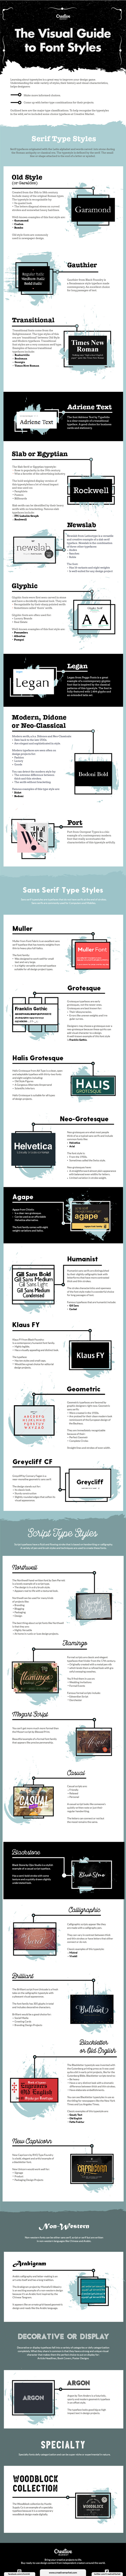 Visual Guide to Font Styles